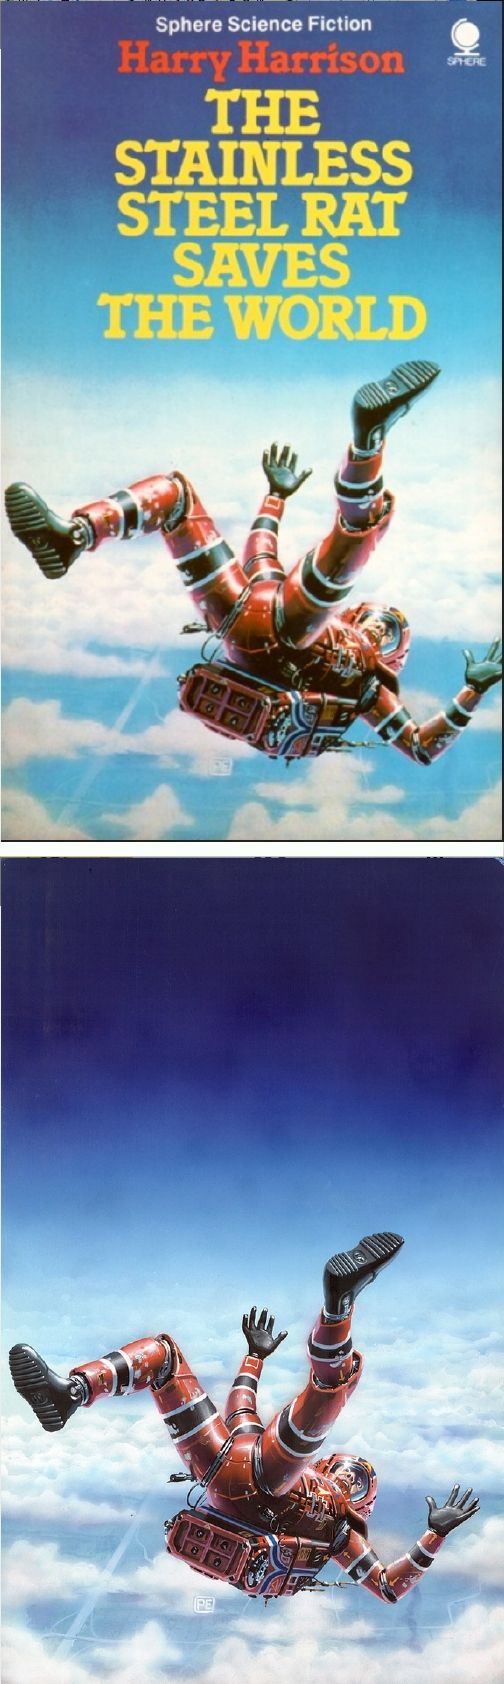 Peter Elson  The Stainless Steel Rat Saves The World By Harry Harrison   1980 Sphere